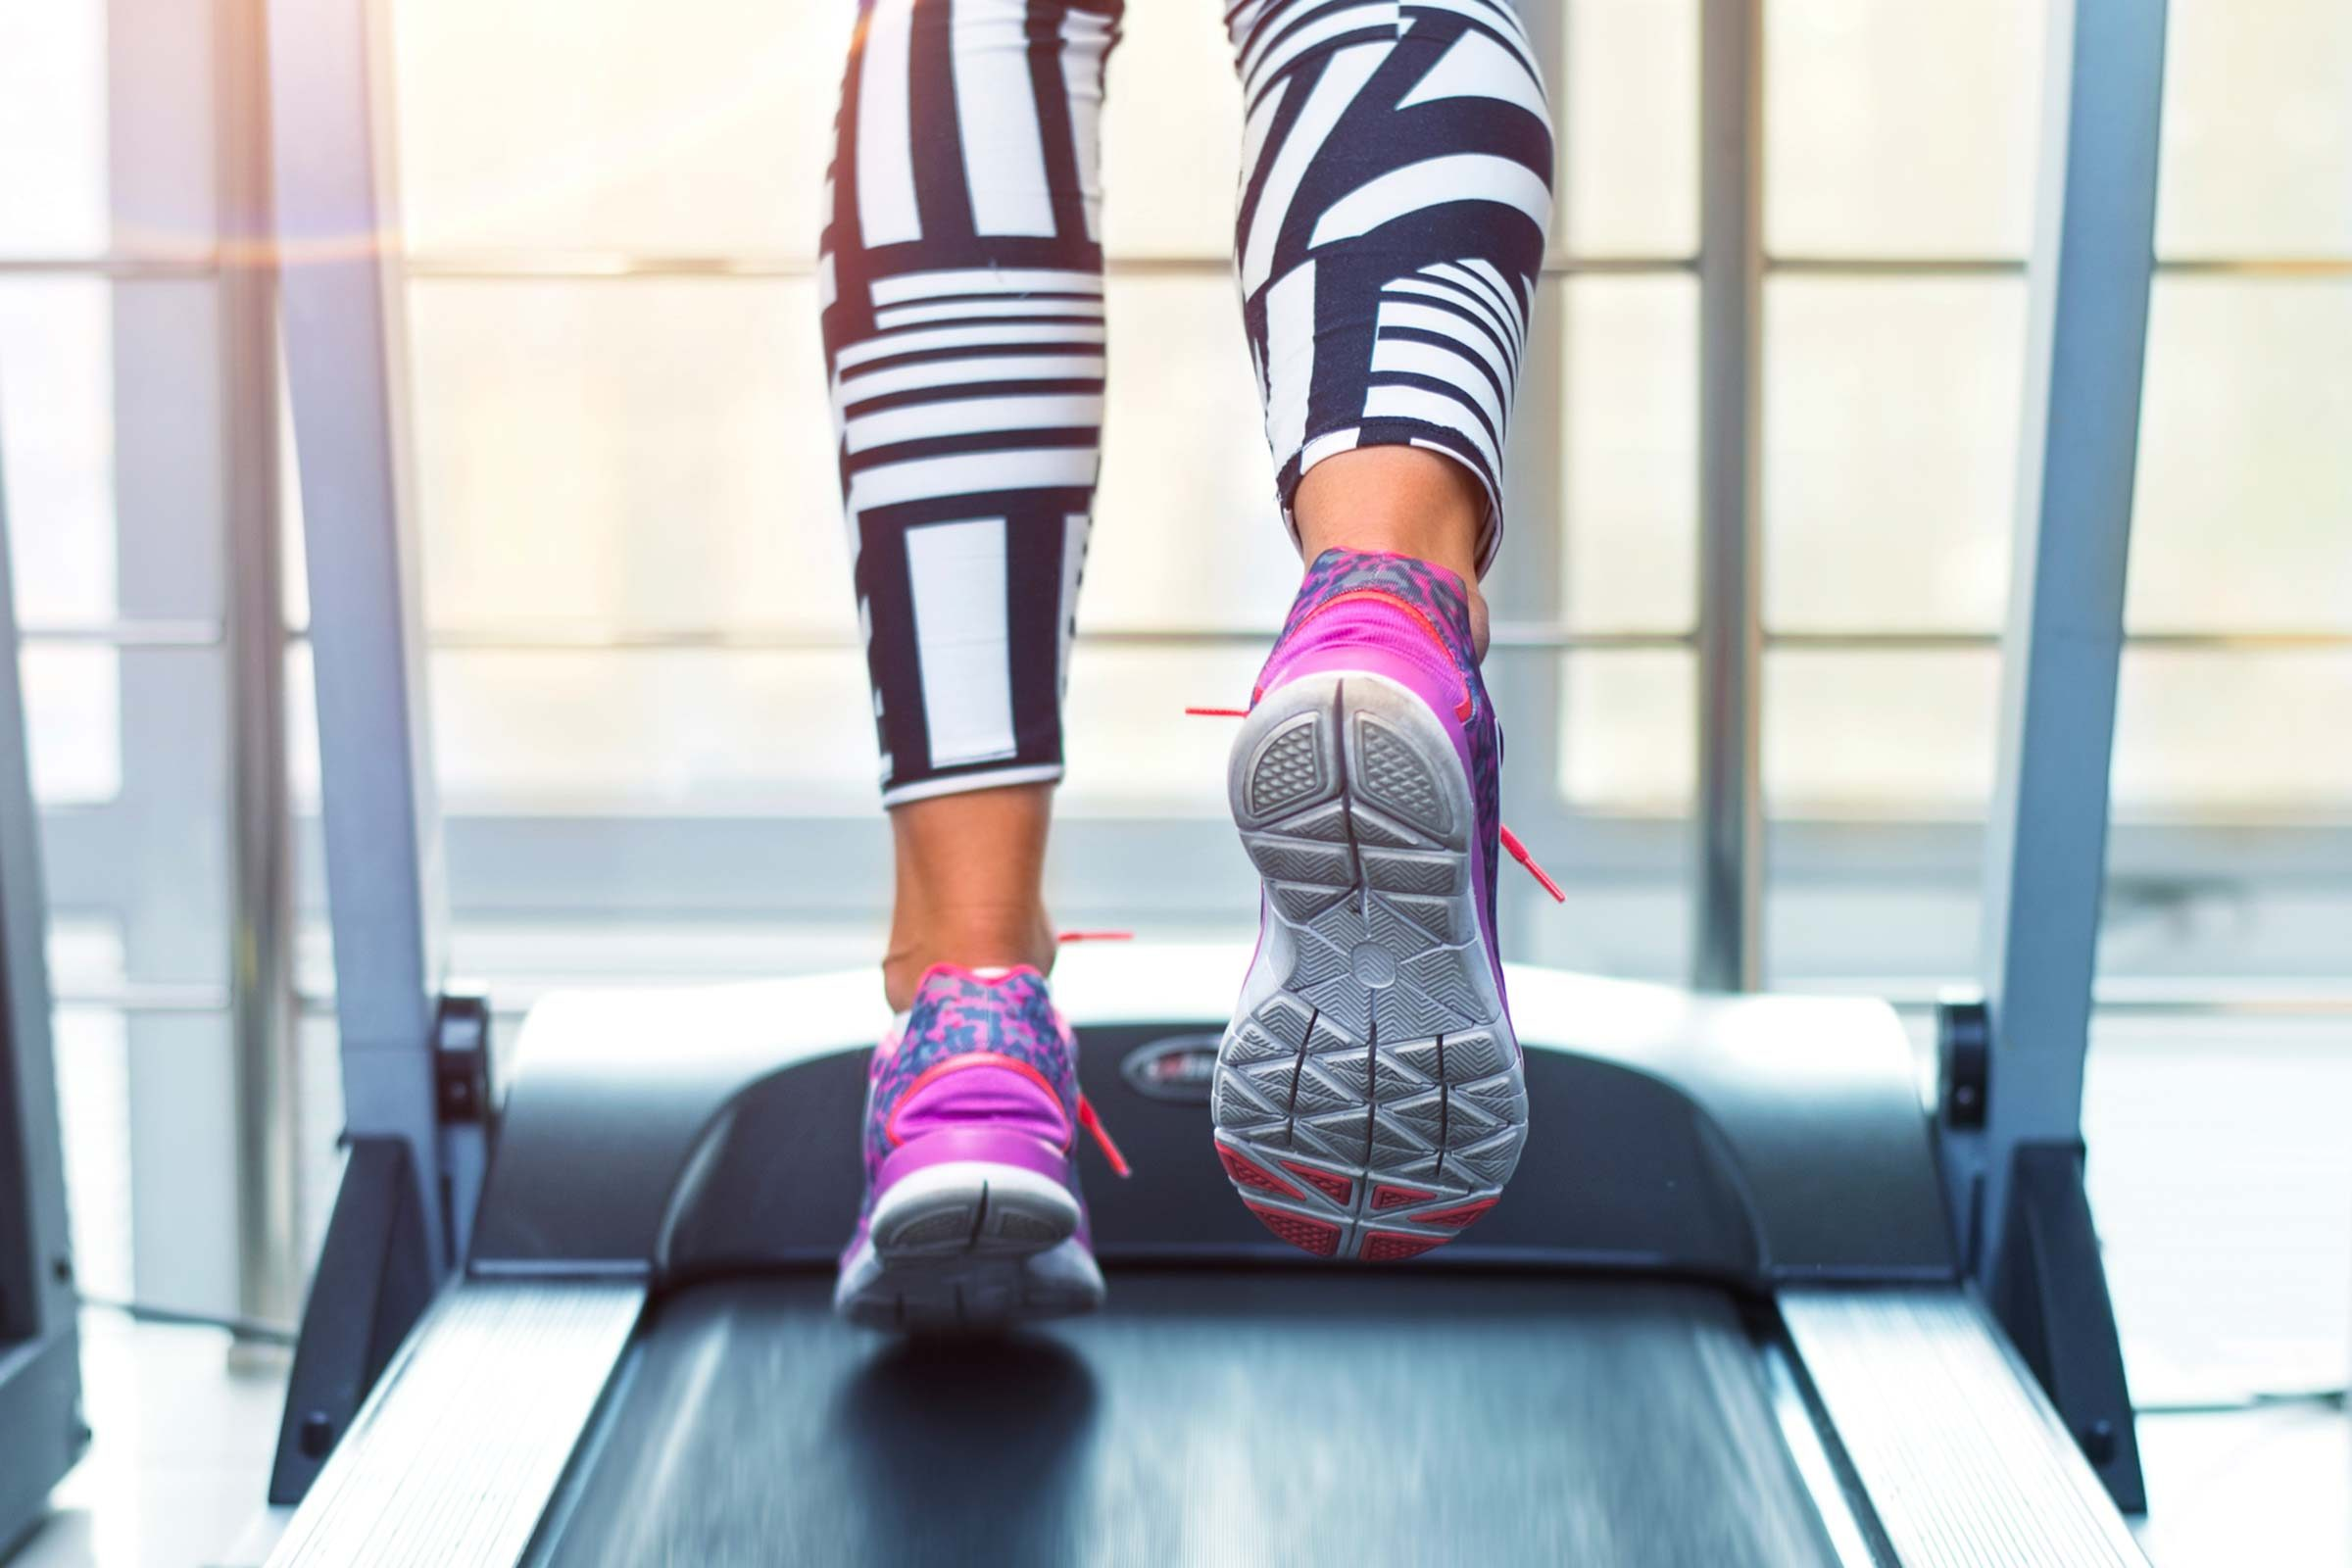 personal trainer workout fitness trainers tell weight exercise intensity secrets istock won loss